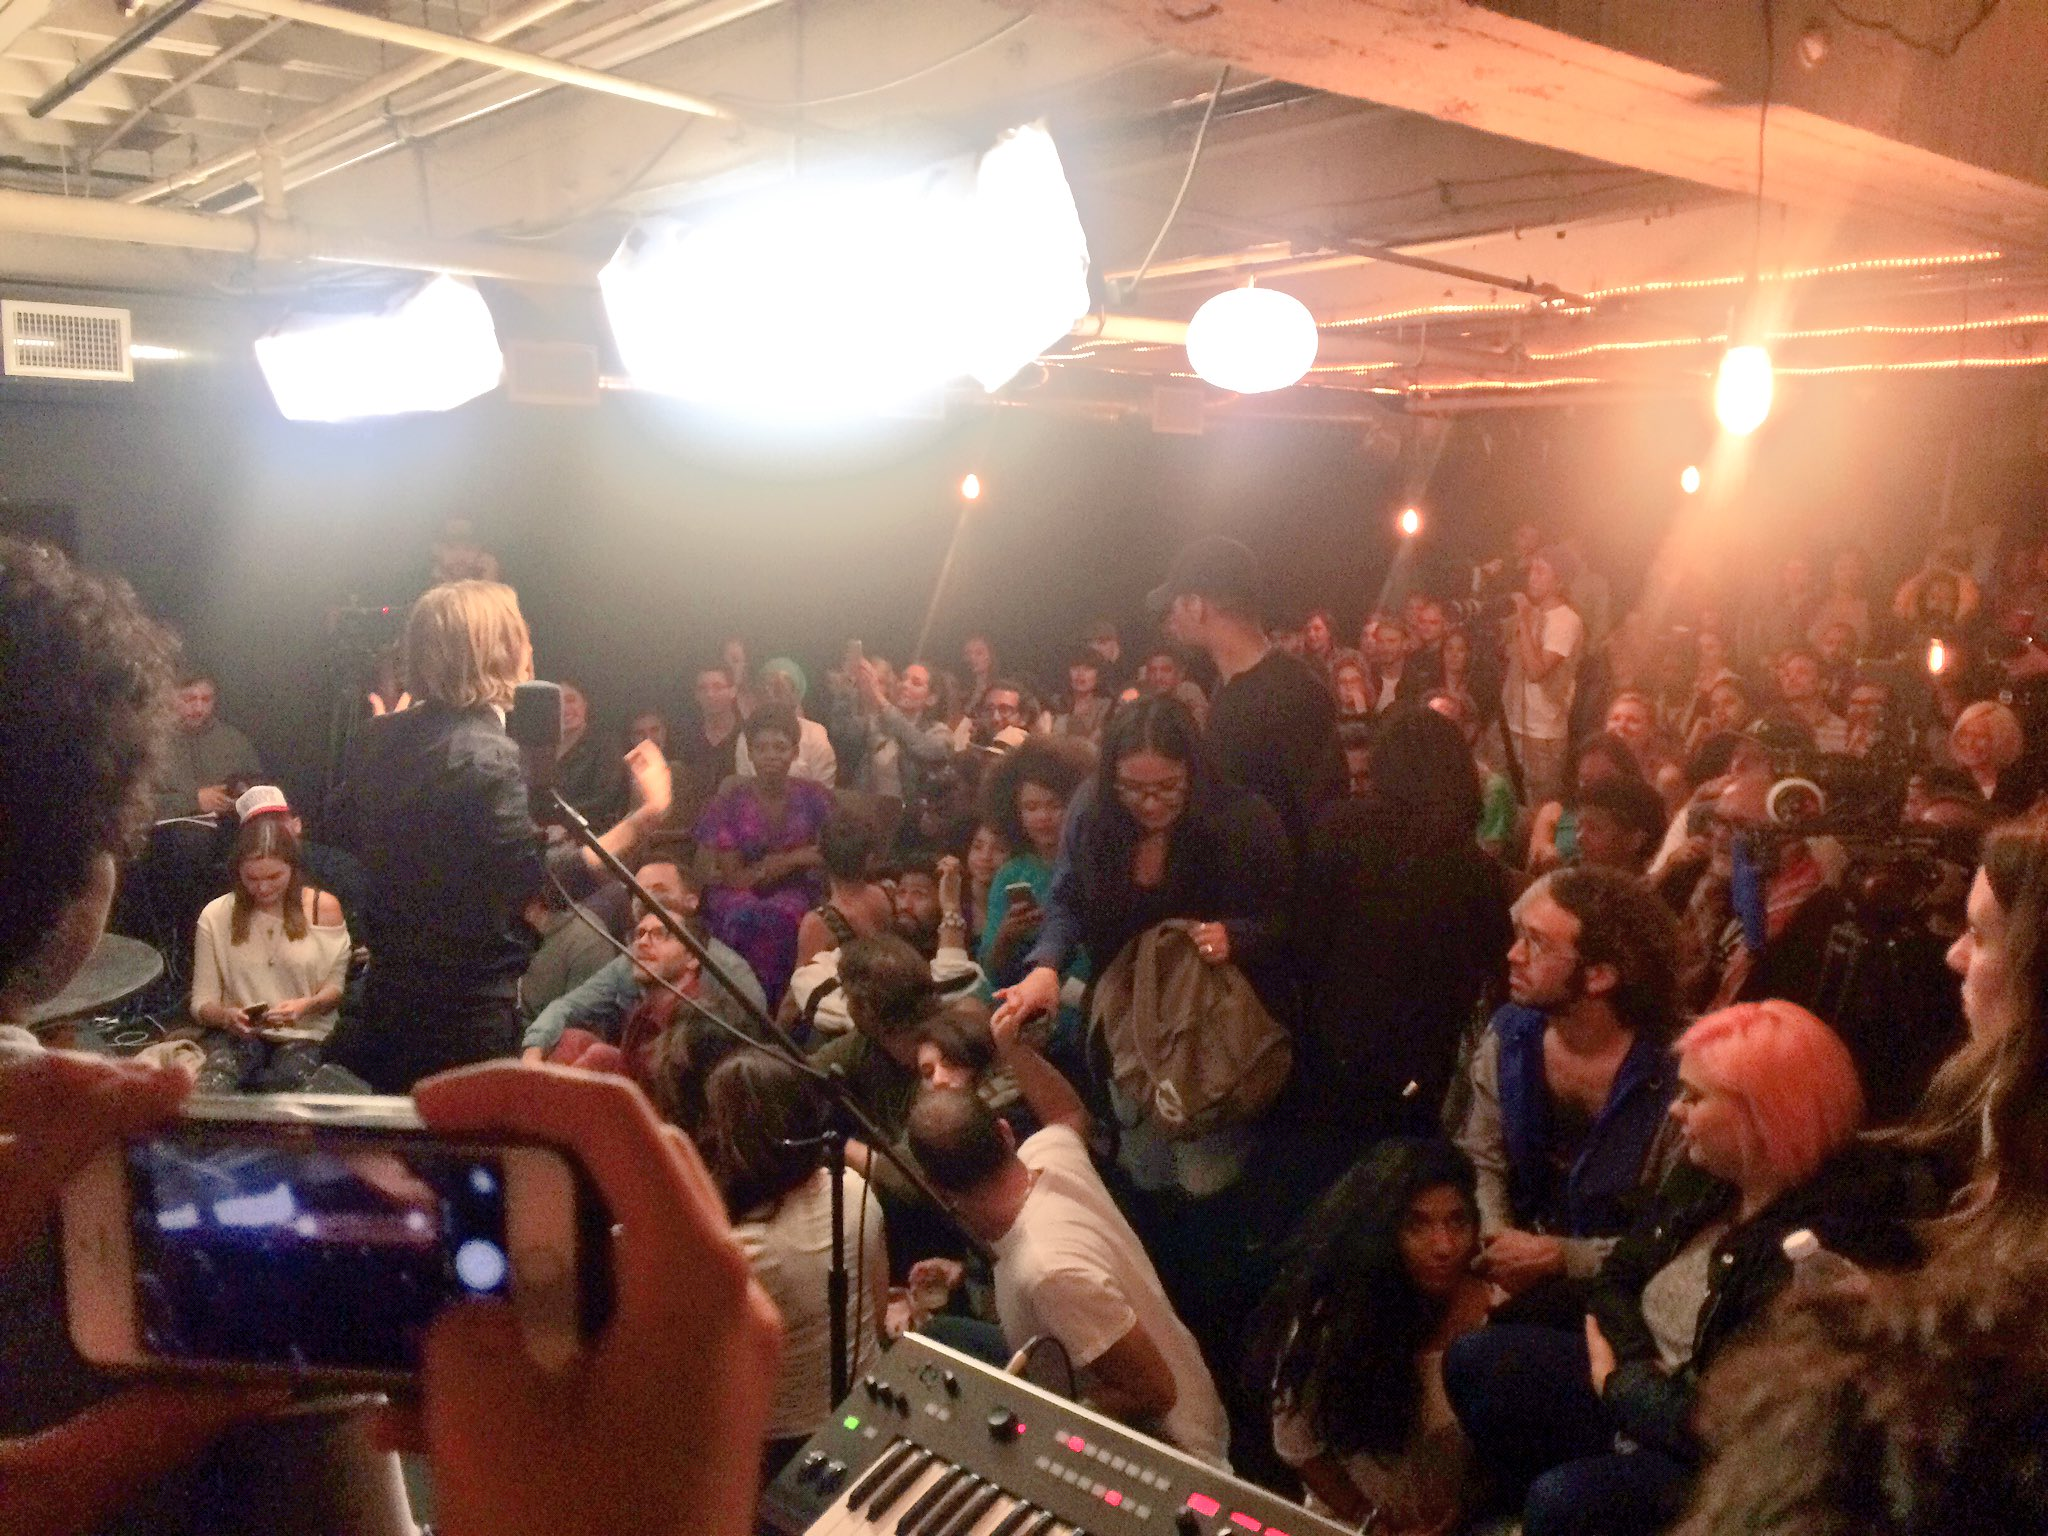 RT @wendycarrillo: wow!! Packed house! @mypeoplestv 3rd show! We're about to go live https://t.co/3MtzcZteZf #mypeoplestv https://t.co/8cP7…